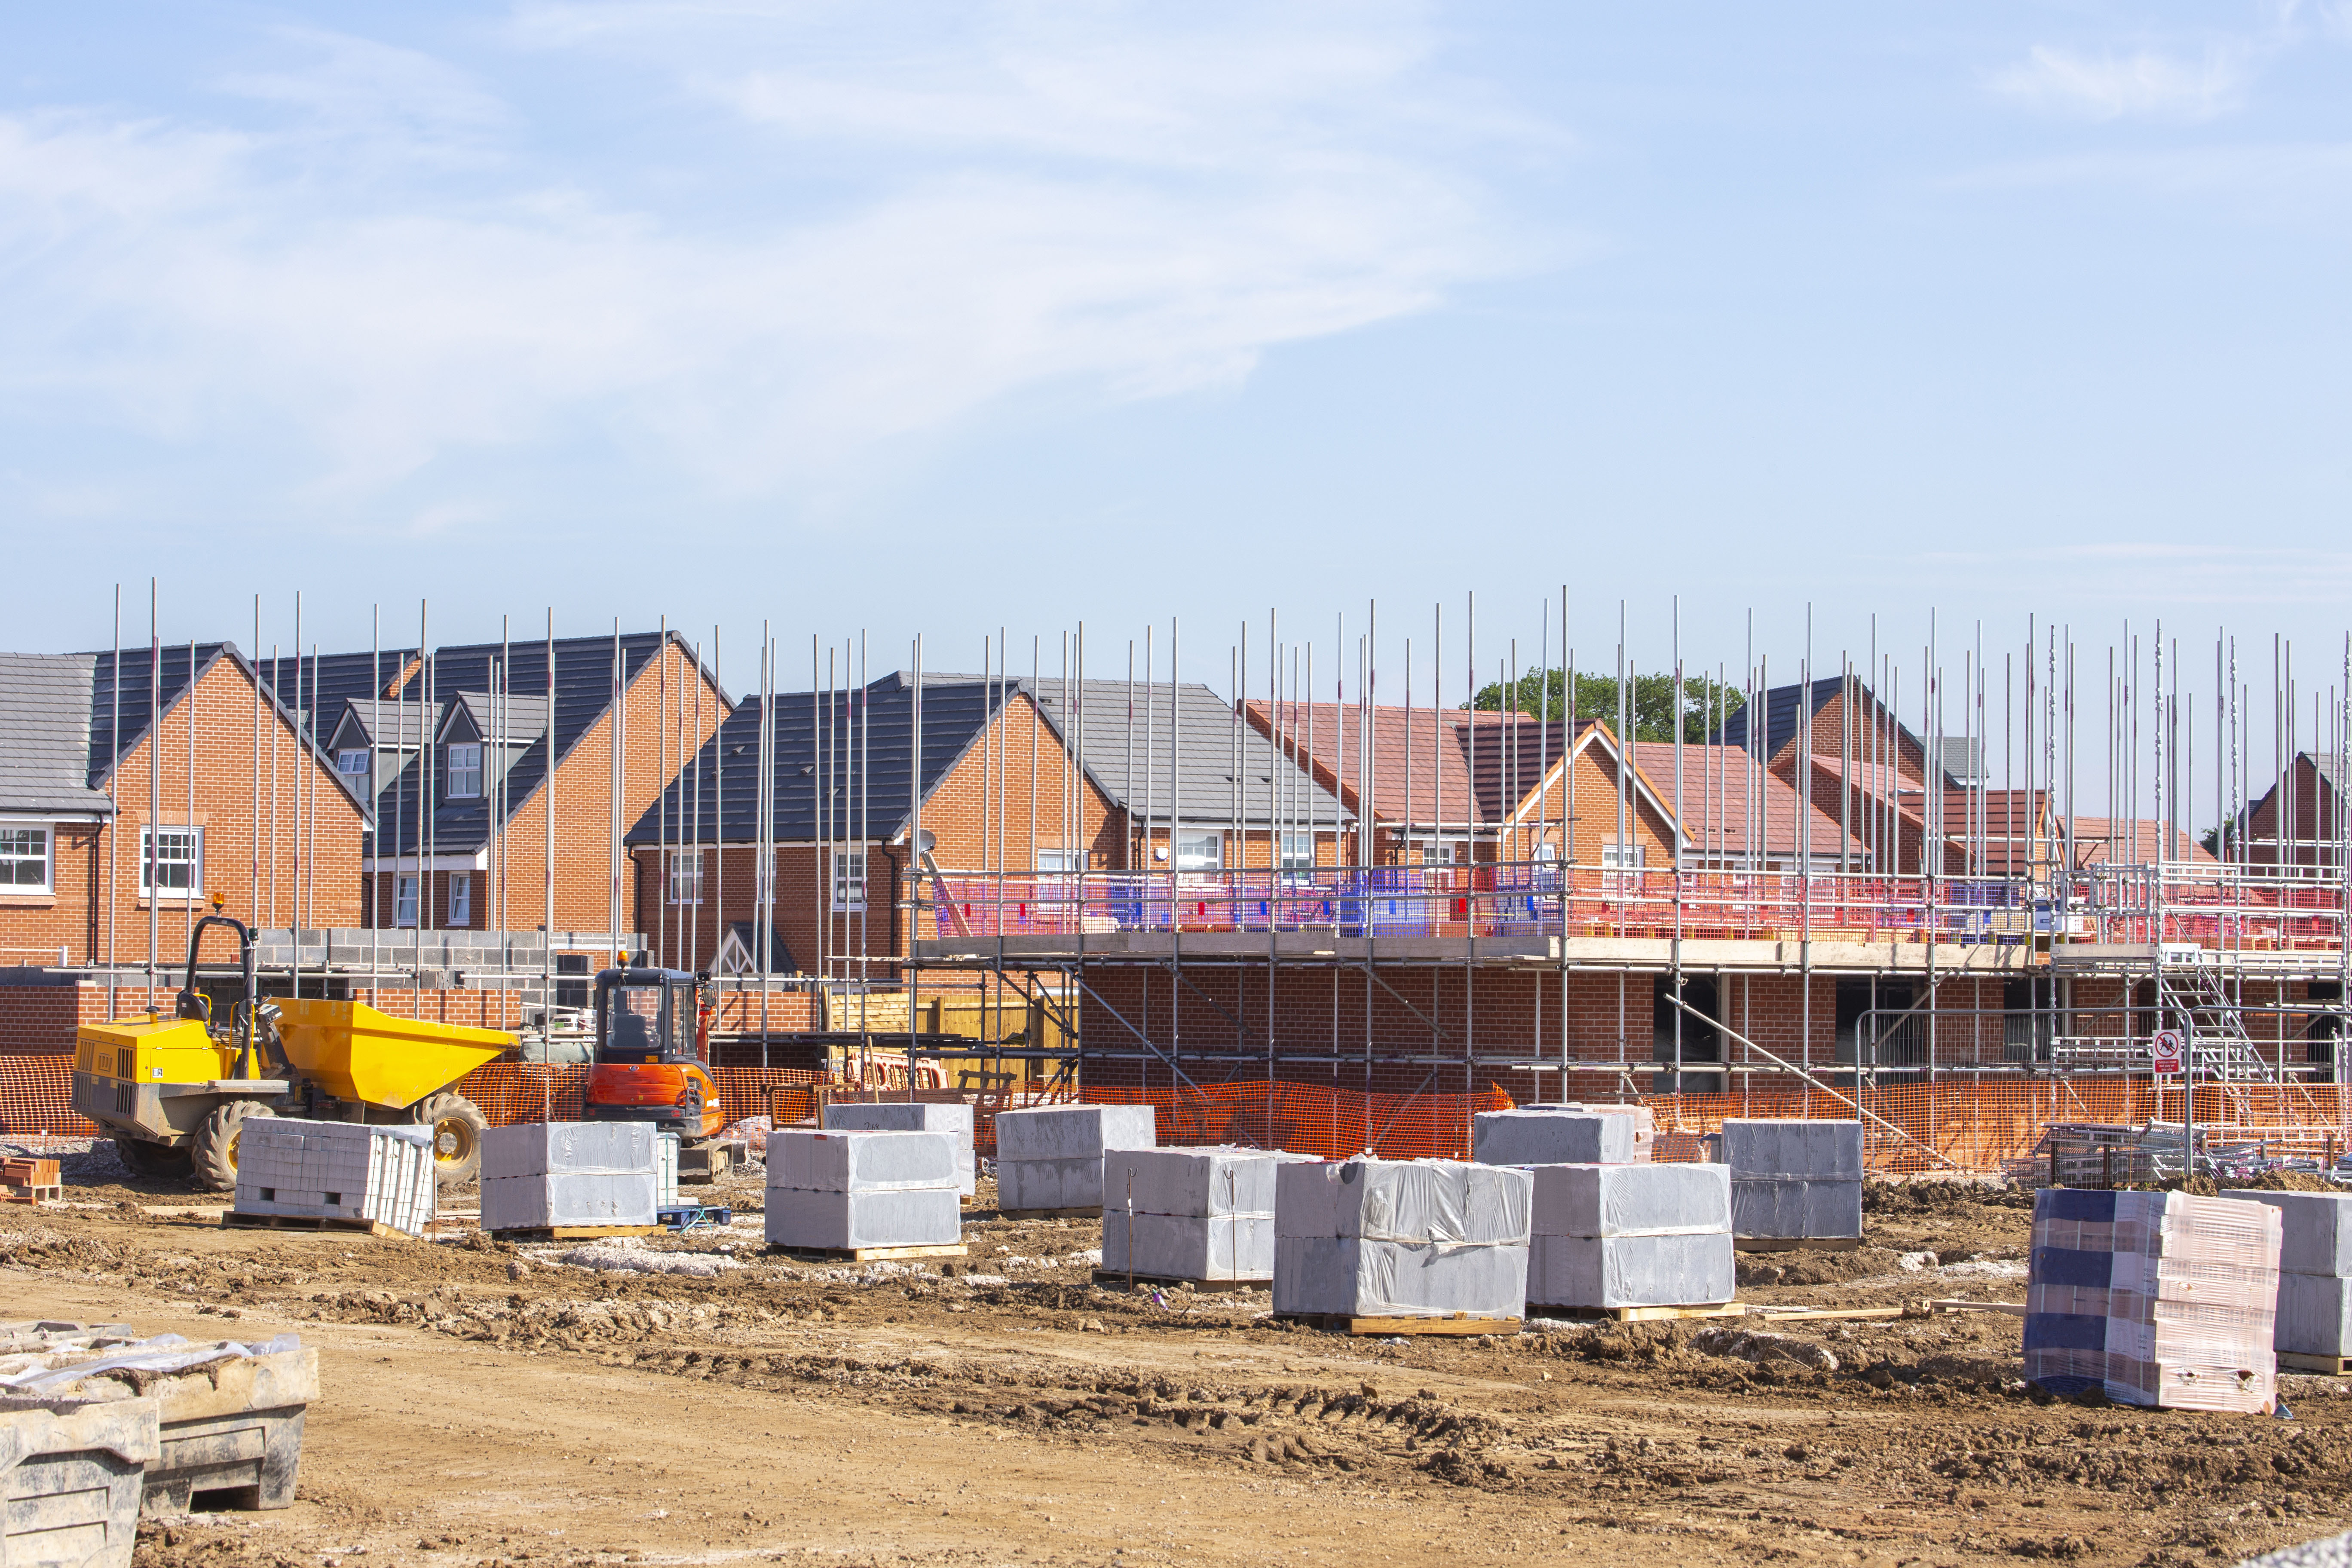 Keyguard have expanded their guarding and security services to one of the UK's leading home builders